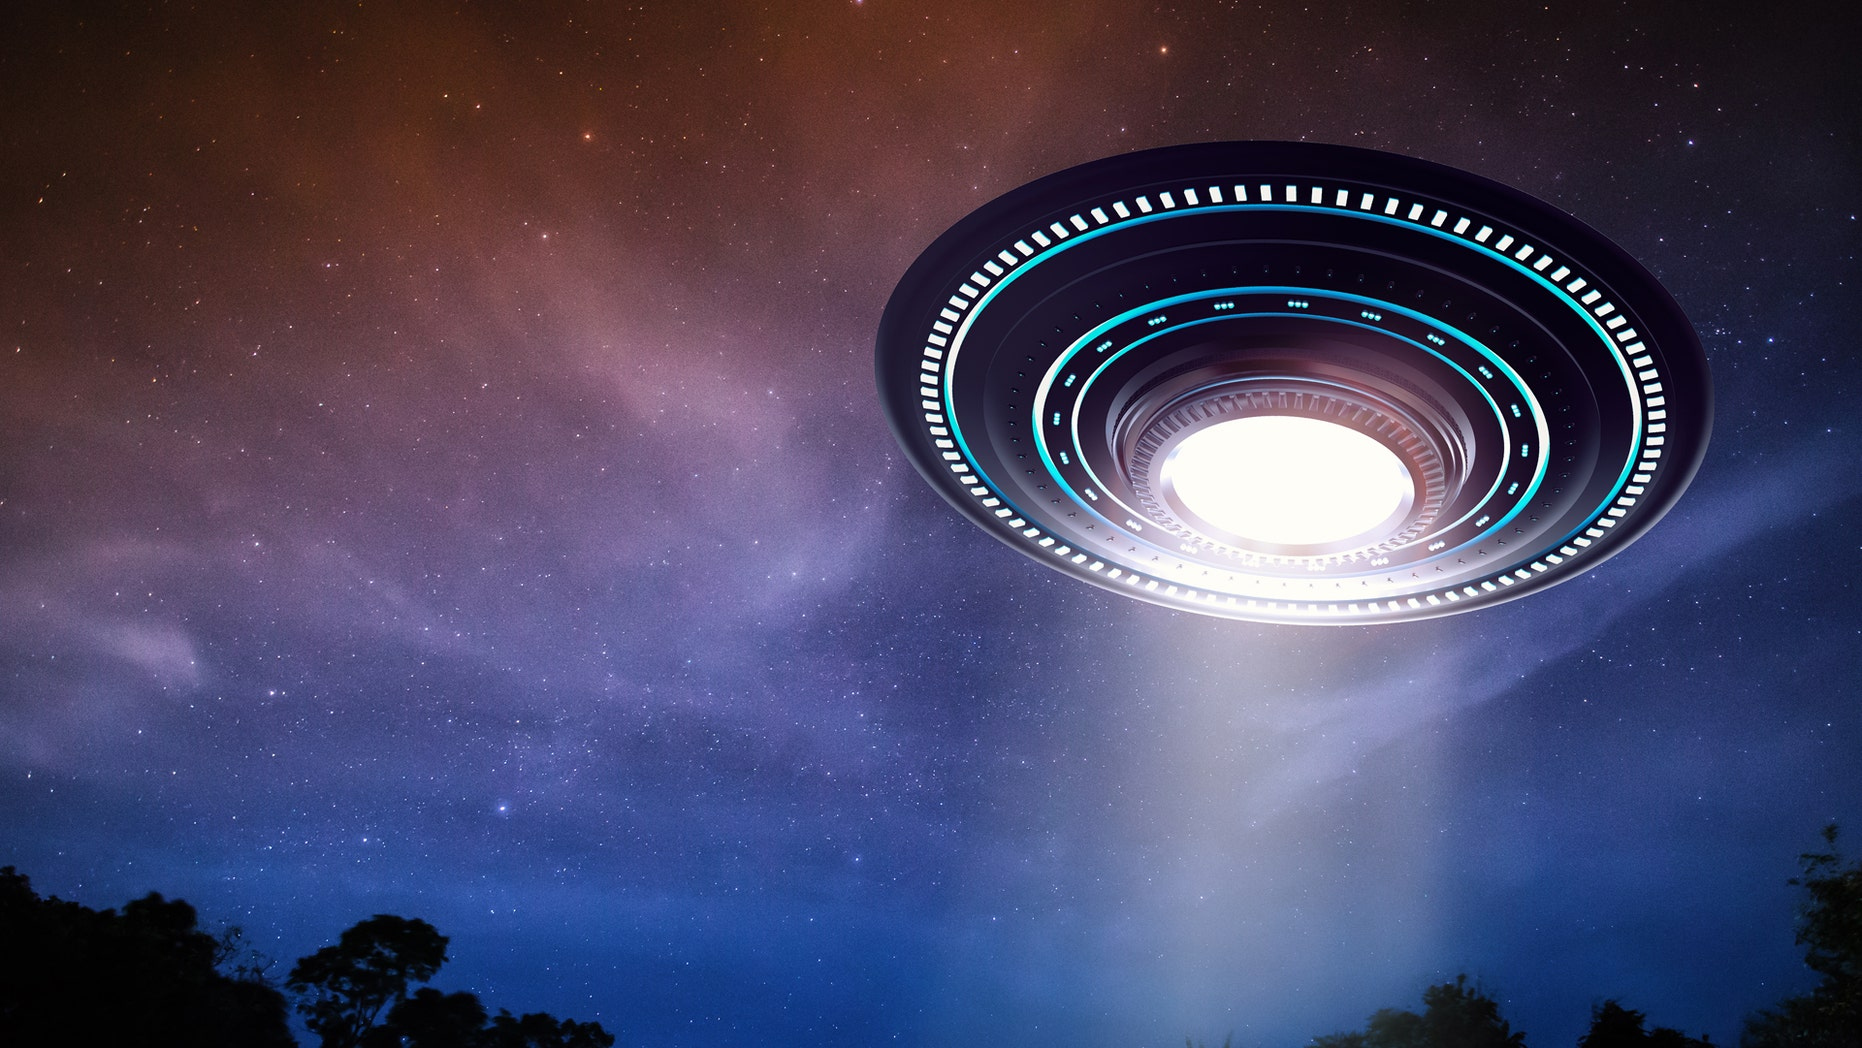 Westlake Legal Group UFOiStock Trump's opinion on UFOs: Nope -- but you never know fox-news/topic/fox-news-flash fox-news/shows/tucker-carlson-tonight fox-news/science/air-and-space/ufos fox-news/person/donald-trump fox-news/entertainment/media fox news fnc/science fnc article Anna Hopkins 00583ca0-4649-5c5c-bda2-fbf8fdc4681b